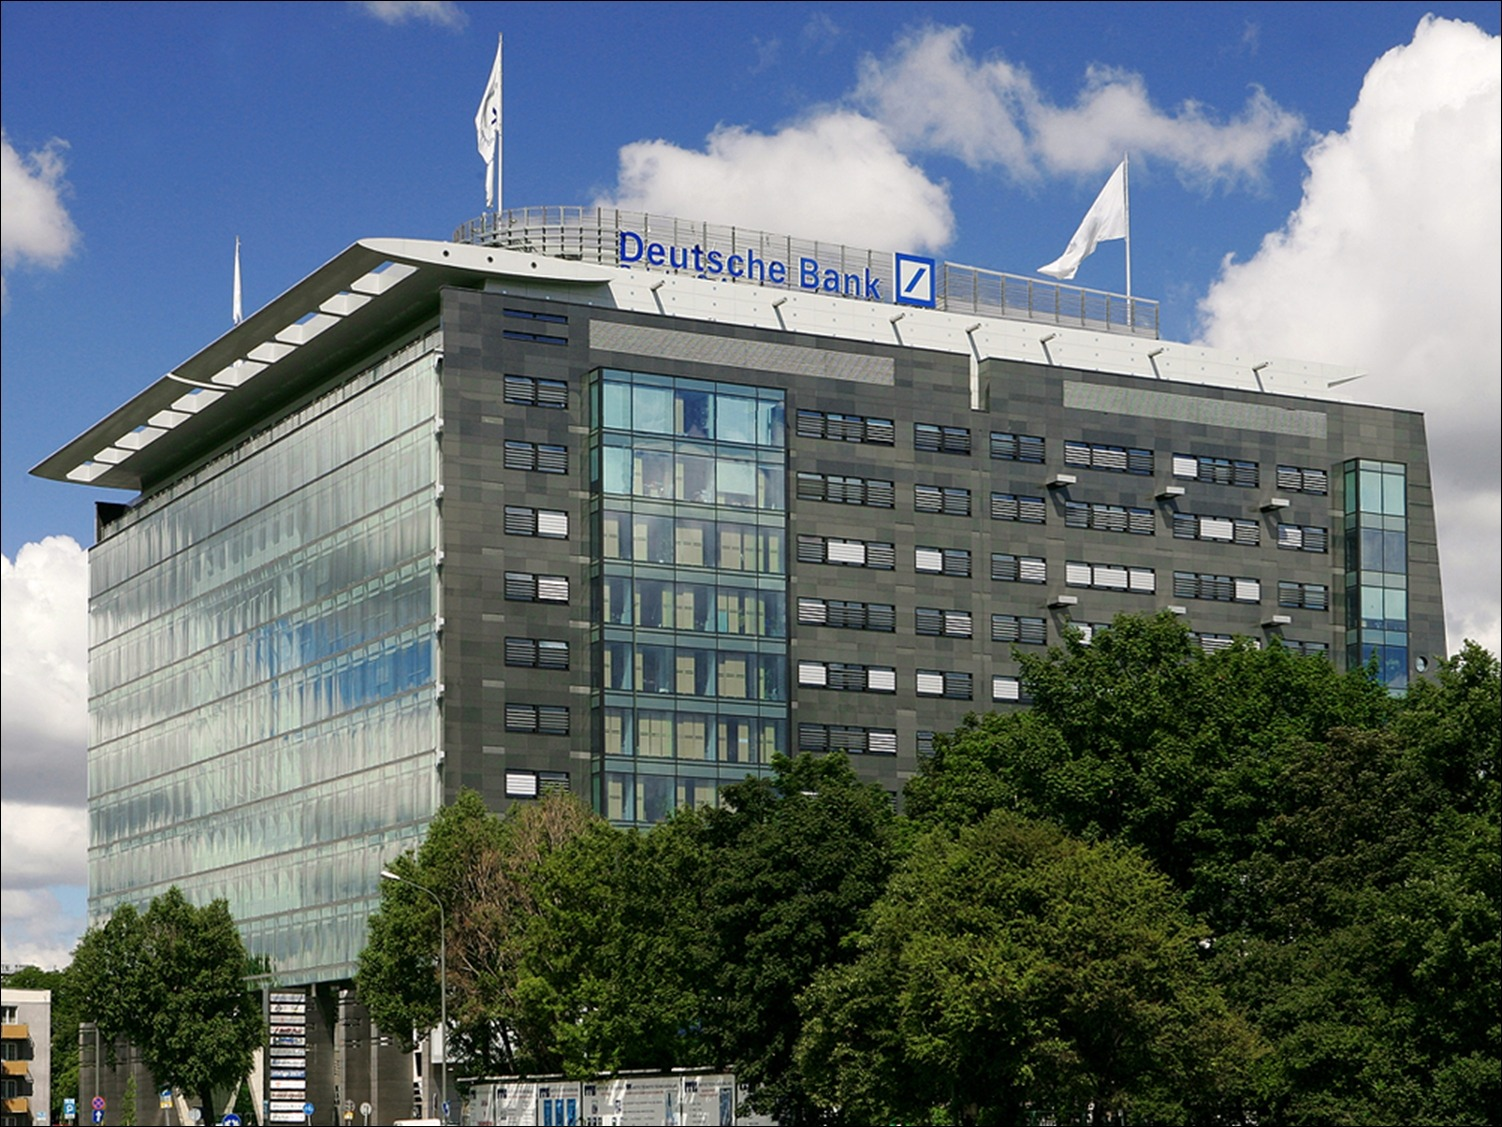 Deutsche Bank reports Q2 loss of £2.8bn amid restructuring